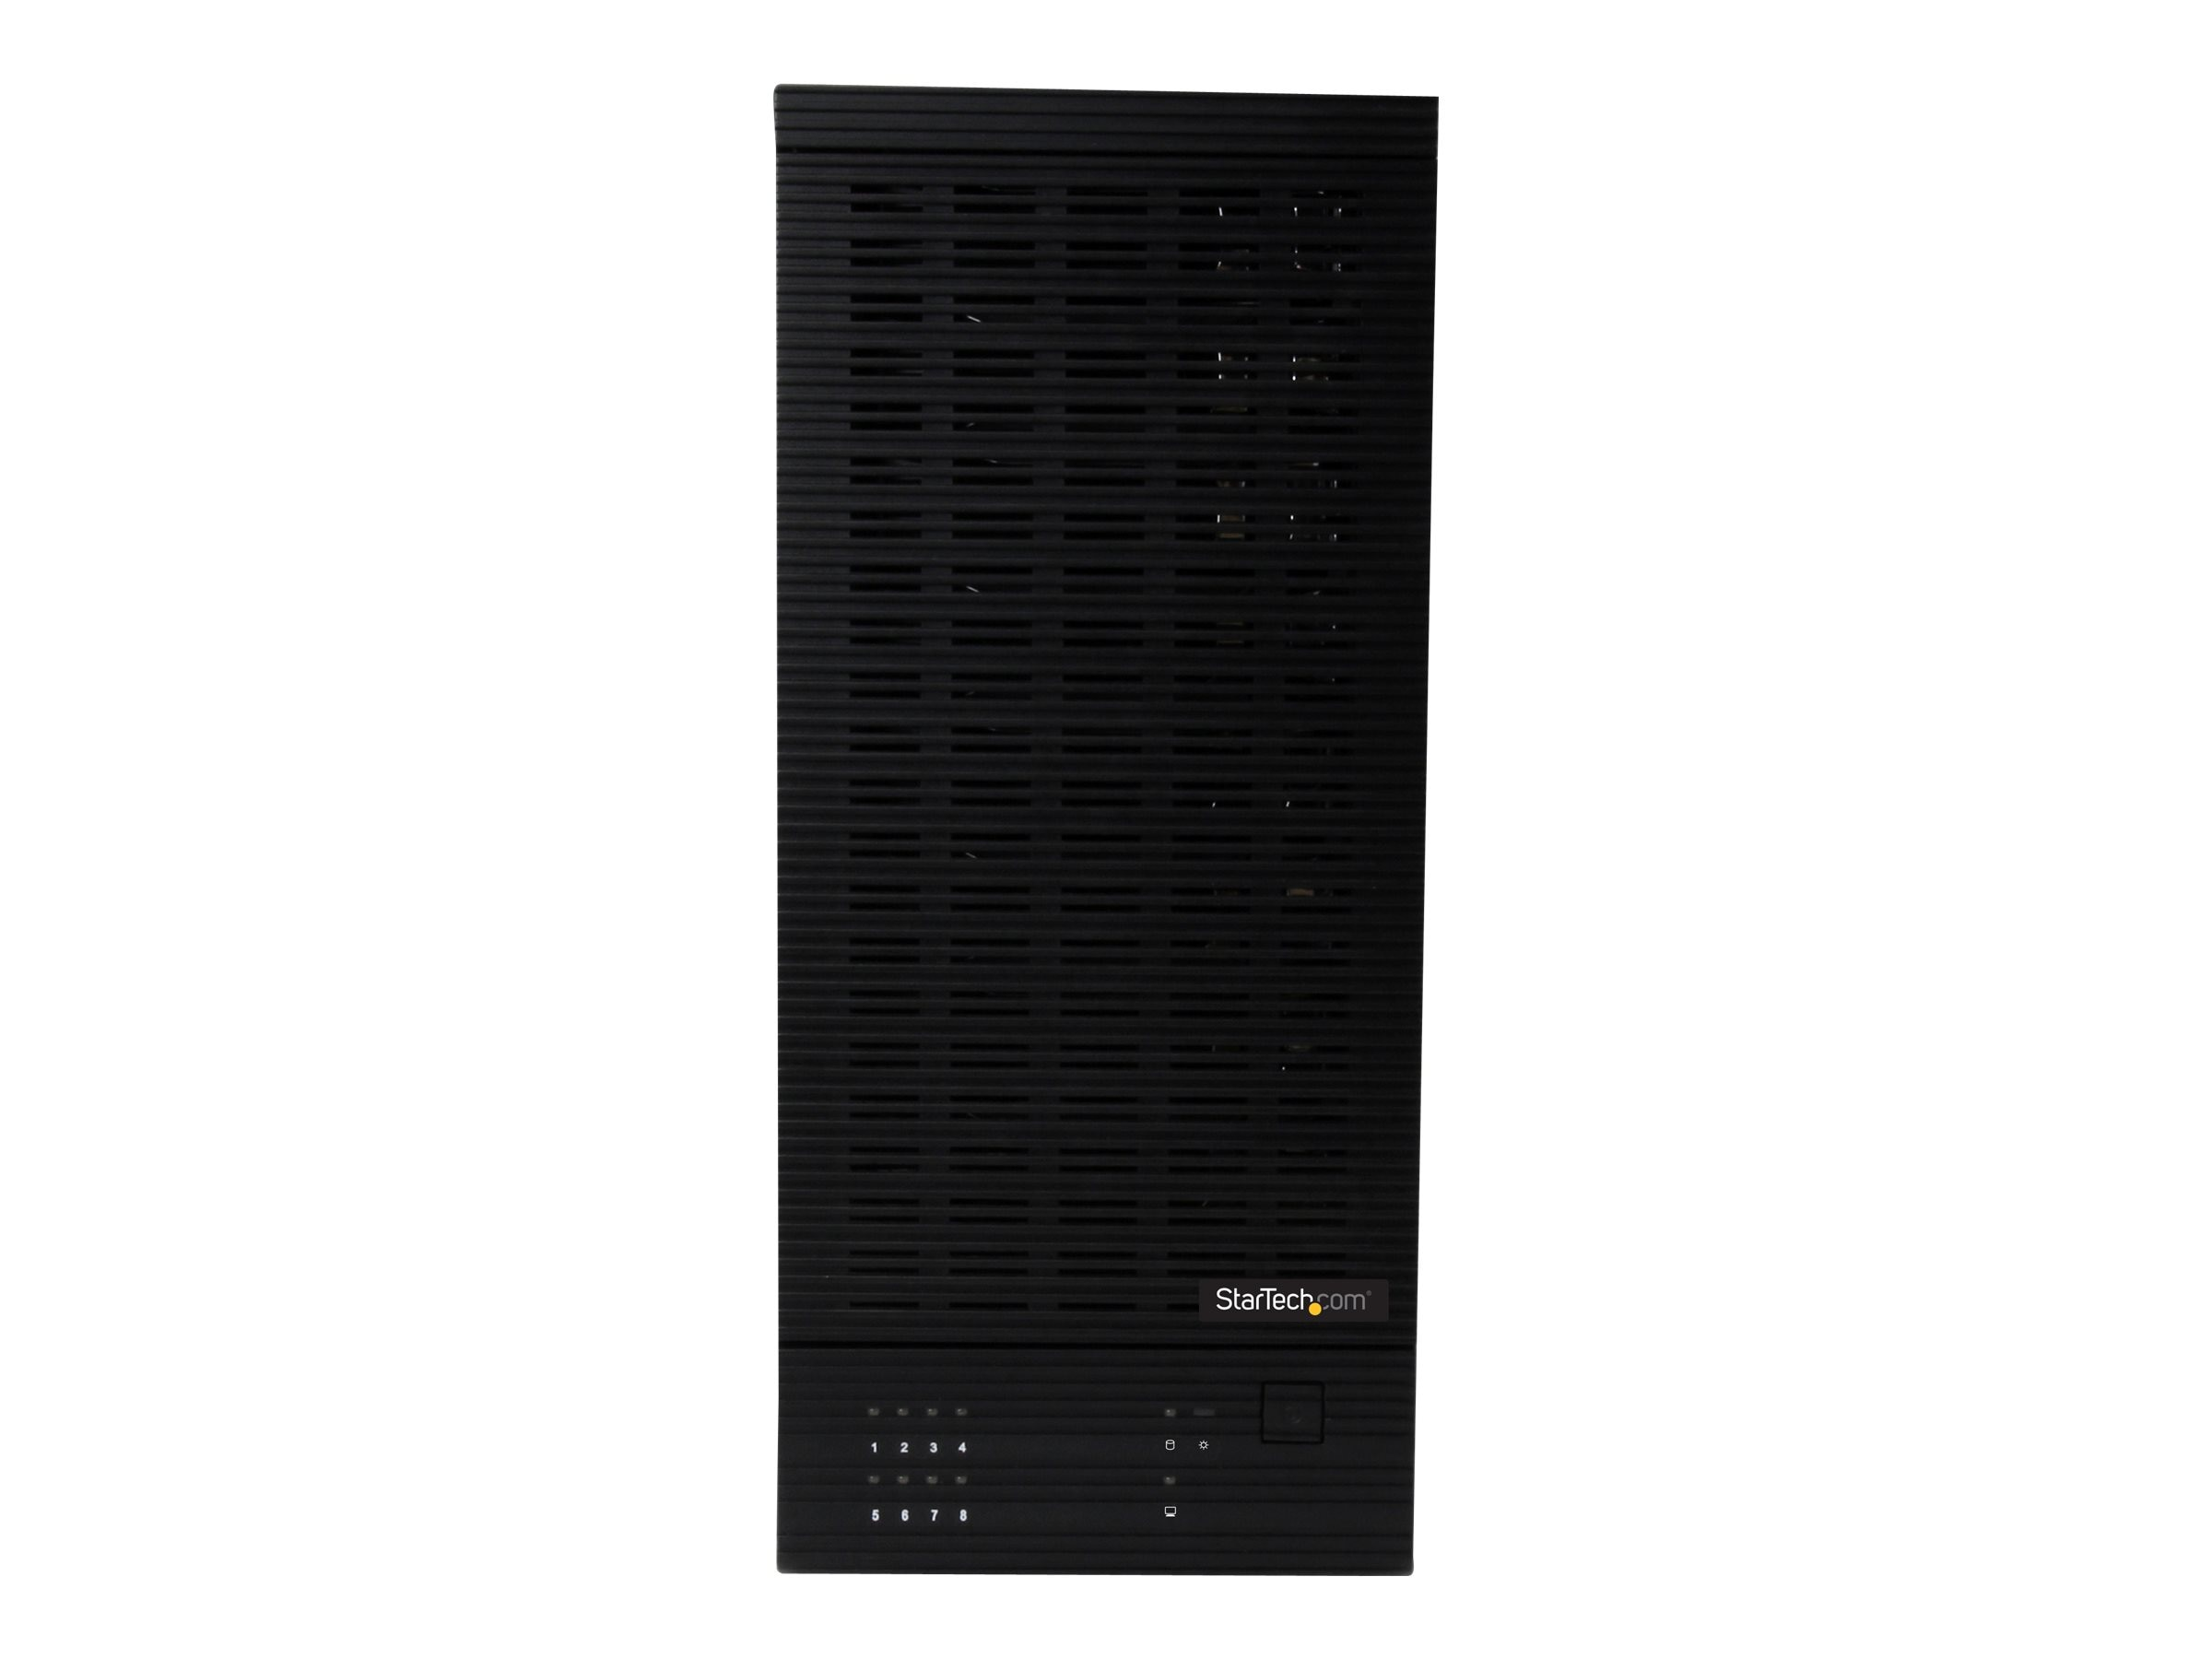 "StarTech.com USB 3.0   eSATA 8-Bay Hot-Swap 2.5 3.5"" SATA III Hard Drive Enclosure with UASP, S358BU33ERM"